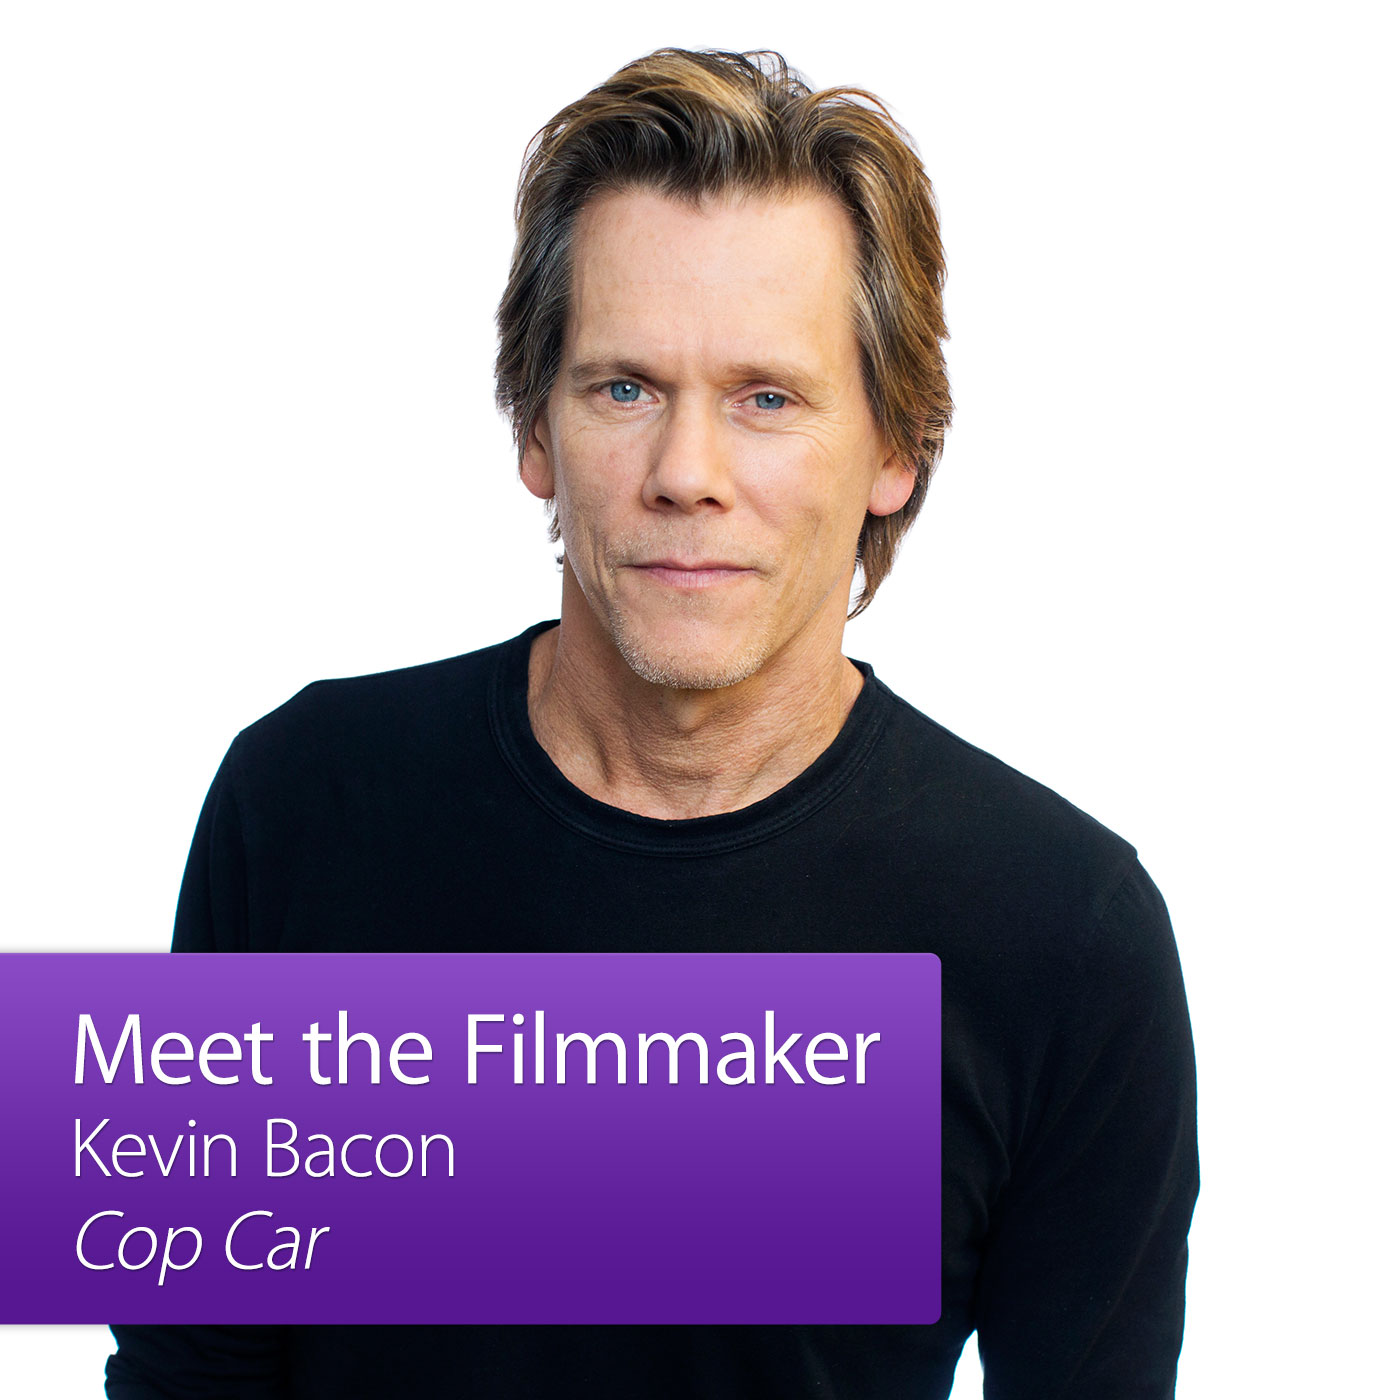 Cop Car: Meet the Filmmaker